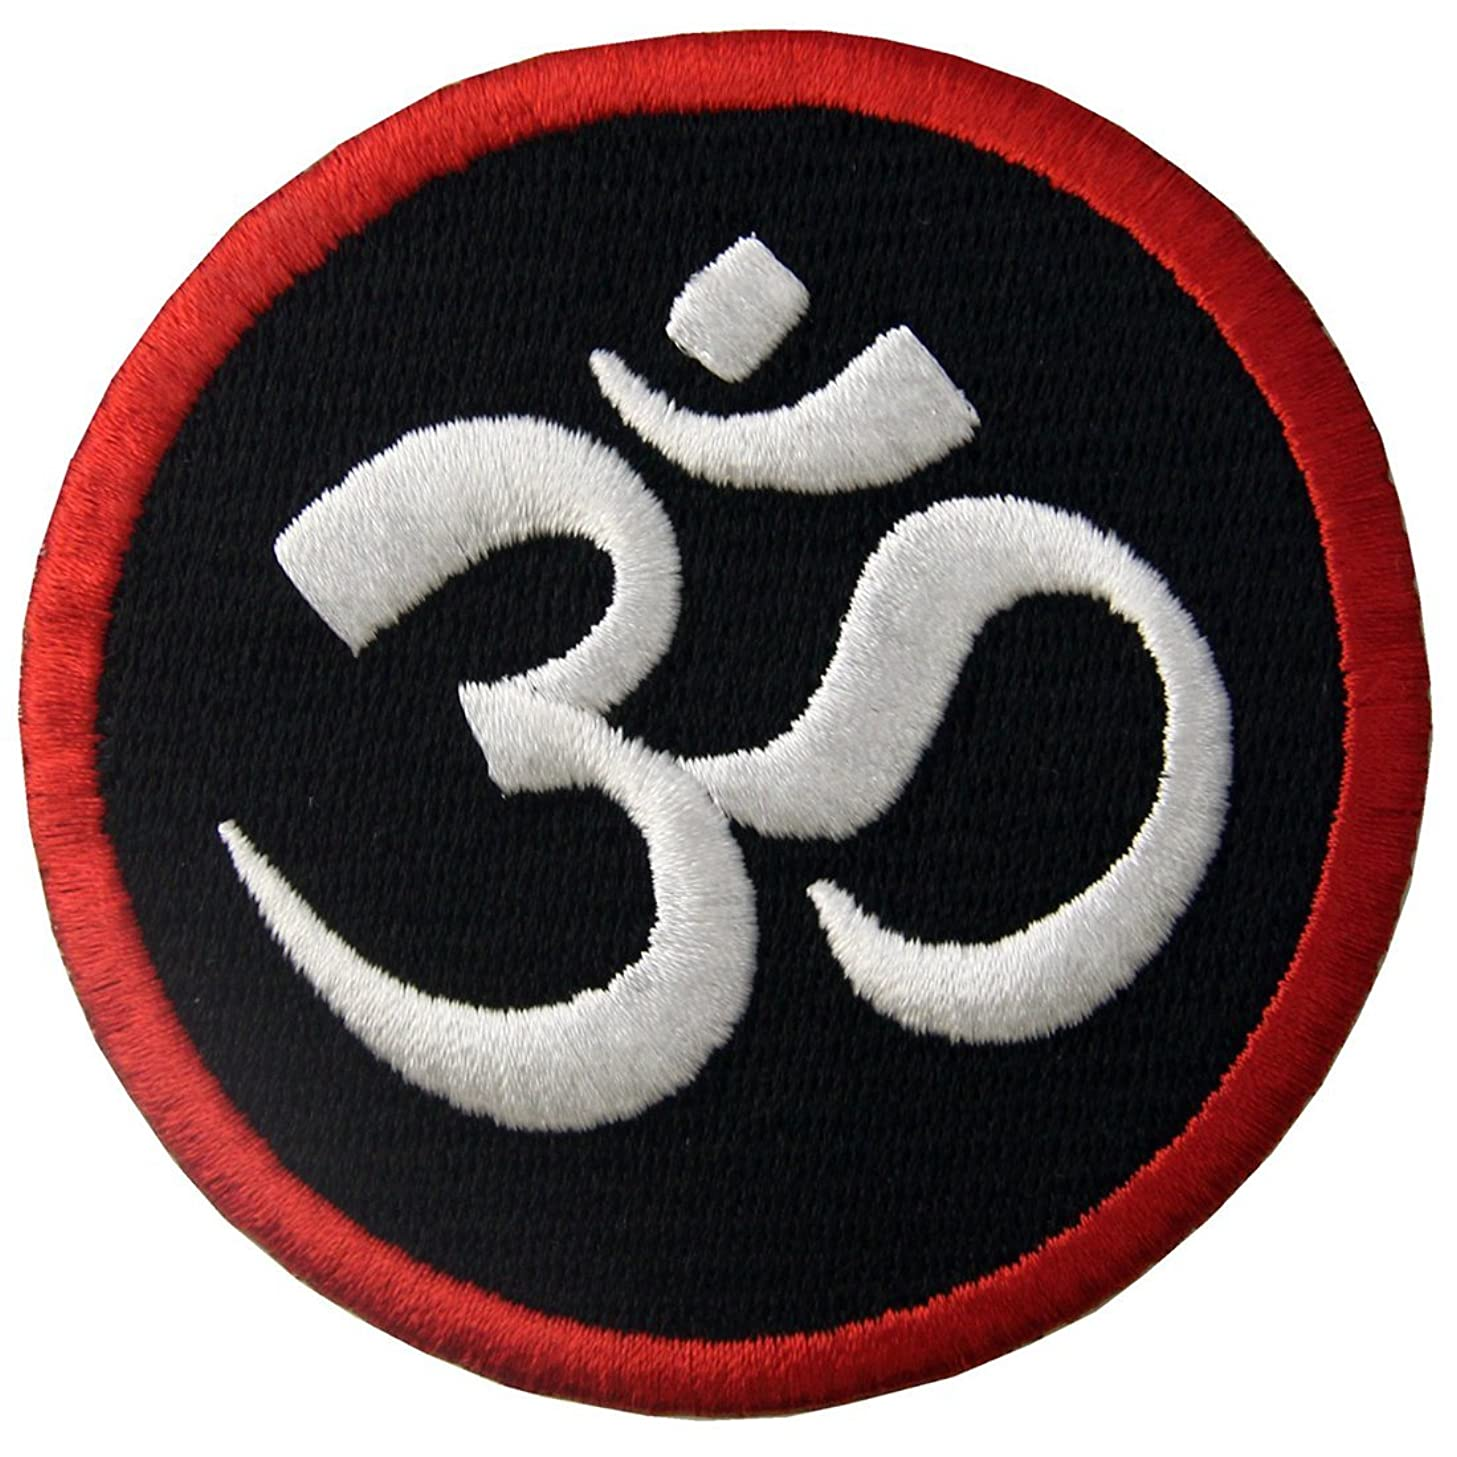 Buddhist Symbol Inner Peace Patch Embroidered Morale Applique Iron On Sew On Emblem